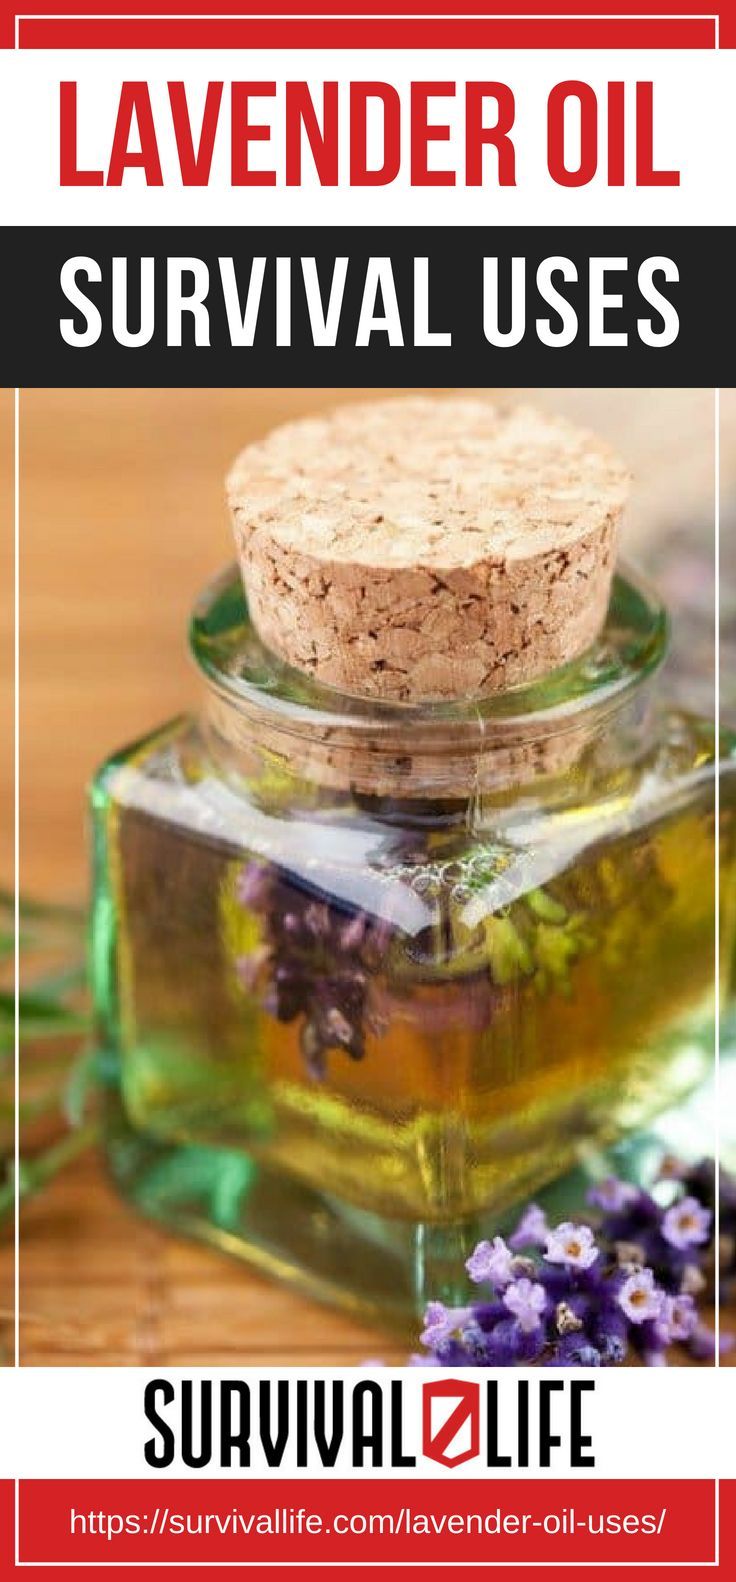 Placard | Lavender Oil Survival Uses